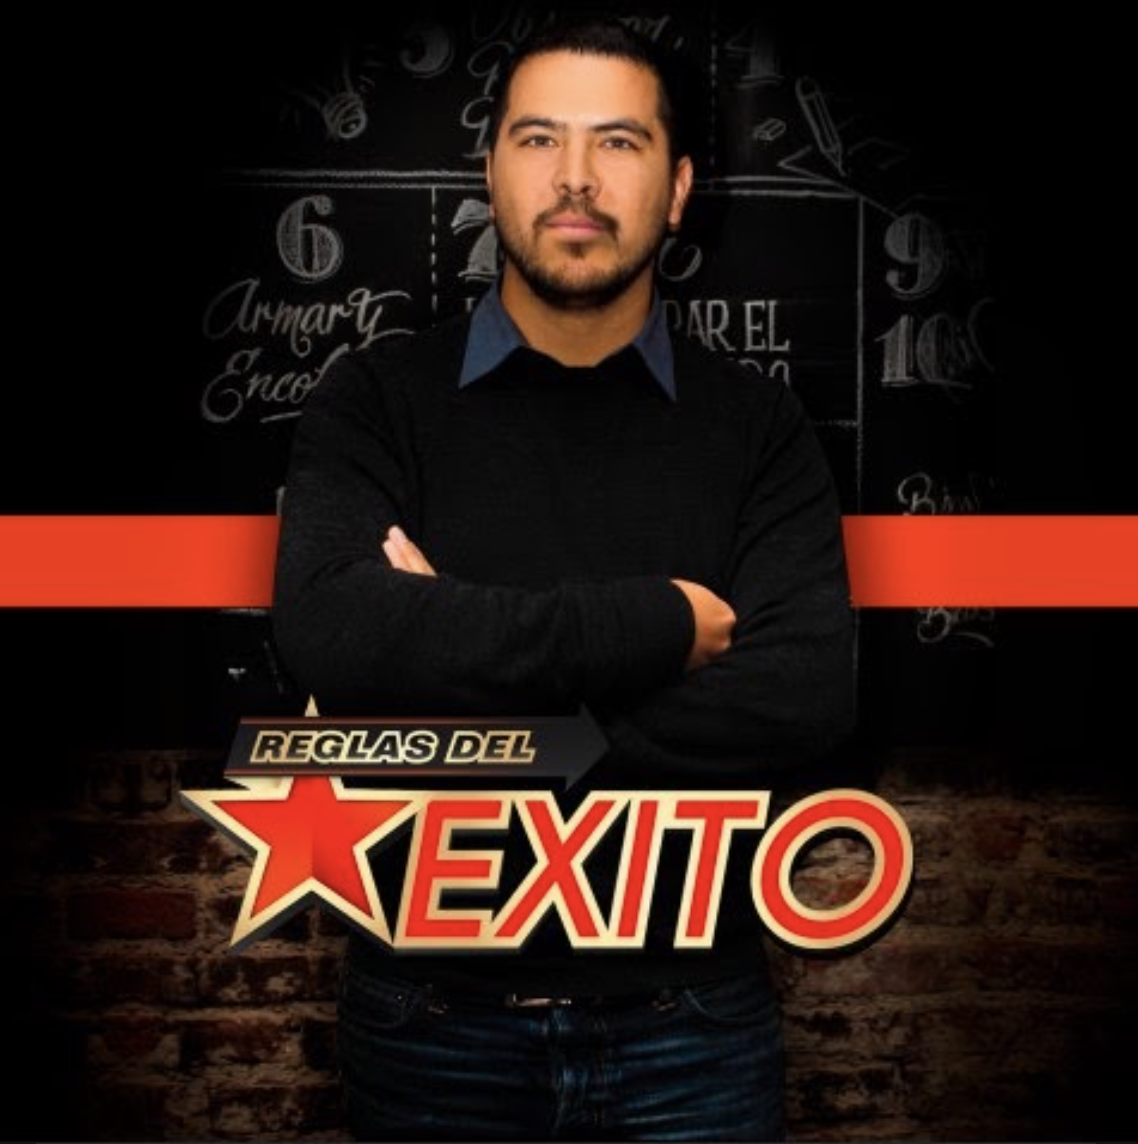 Reglas del Exito - Reglas Del Exito.com is a TV show and Youtube channel in Spanish that produces interviews and curates videos of people who's stories are worth watching.Our mission is to foster personal transformation. We do this by communicating inspirational stories from people that 'fought and made it' by becoming aware of themselves, their limitations and pushing adversity though endless persistence.We aim to take our followers into a journey across the lives of these people with the ultimate end of inspiring and motivating them to pursue their own dreams.In 2019 RDE YouTube channel crossed the 10 million minutes of streamed content.www.reglasdelexito.com